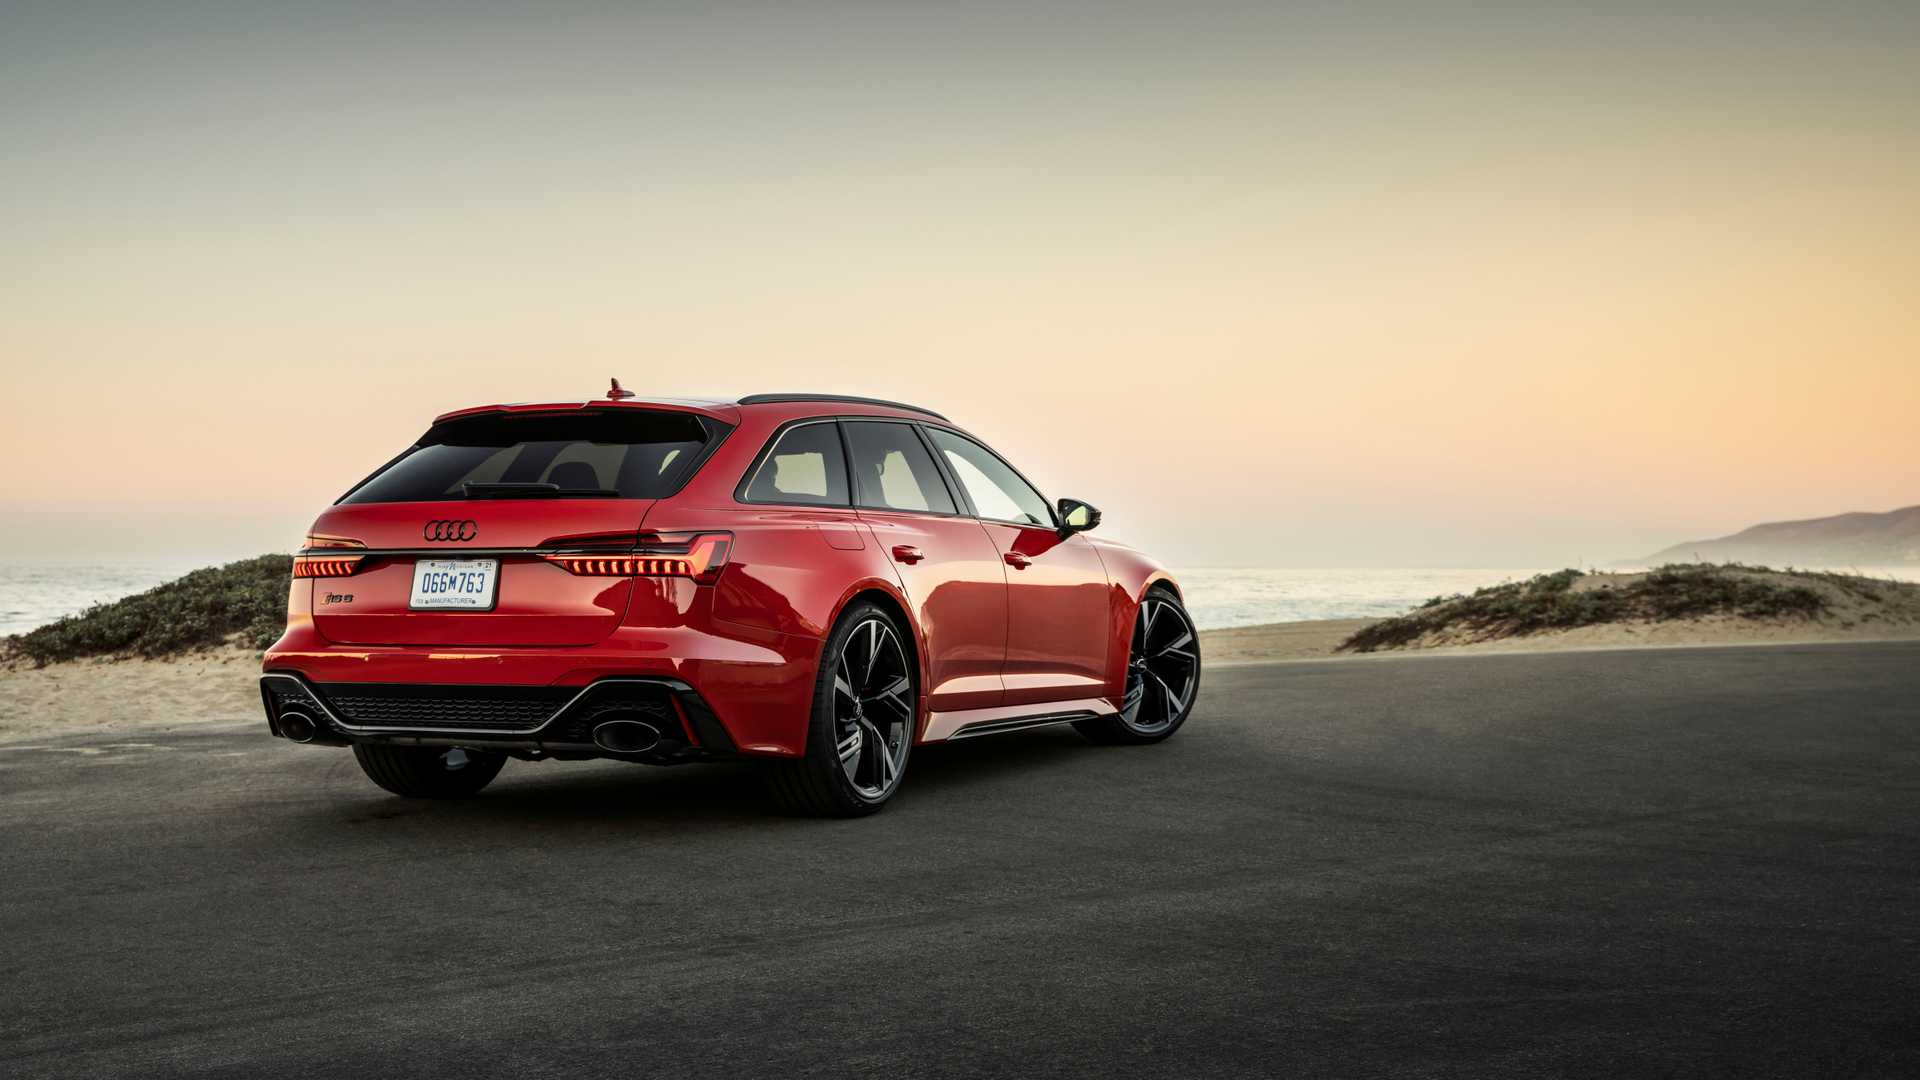 2021 audi rs6 avant first drive a wolf in wolf's clothing